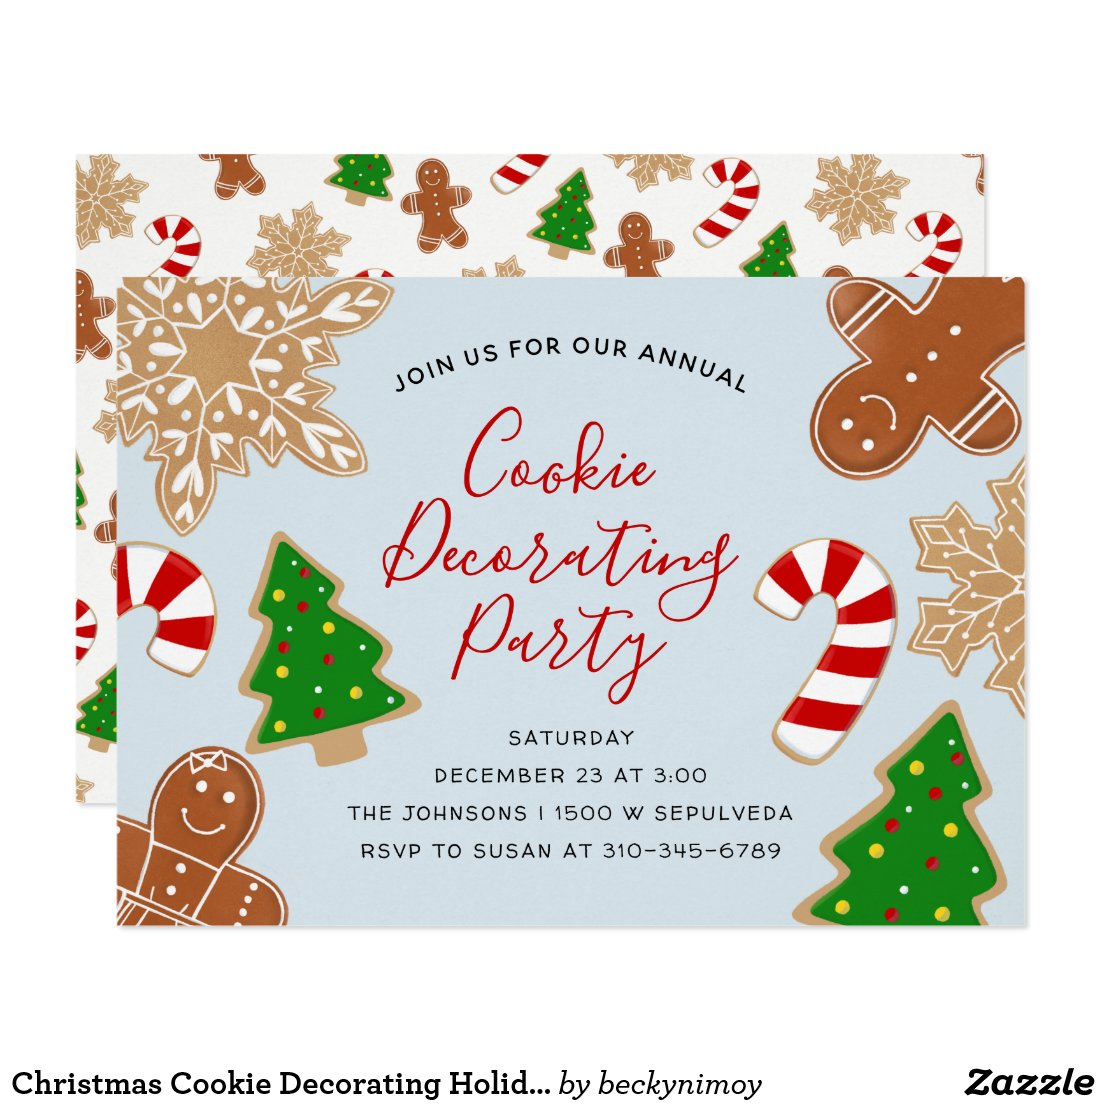 Christmas Cookie Decorating Holiday Party Invitation